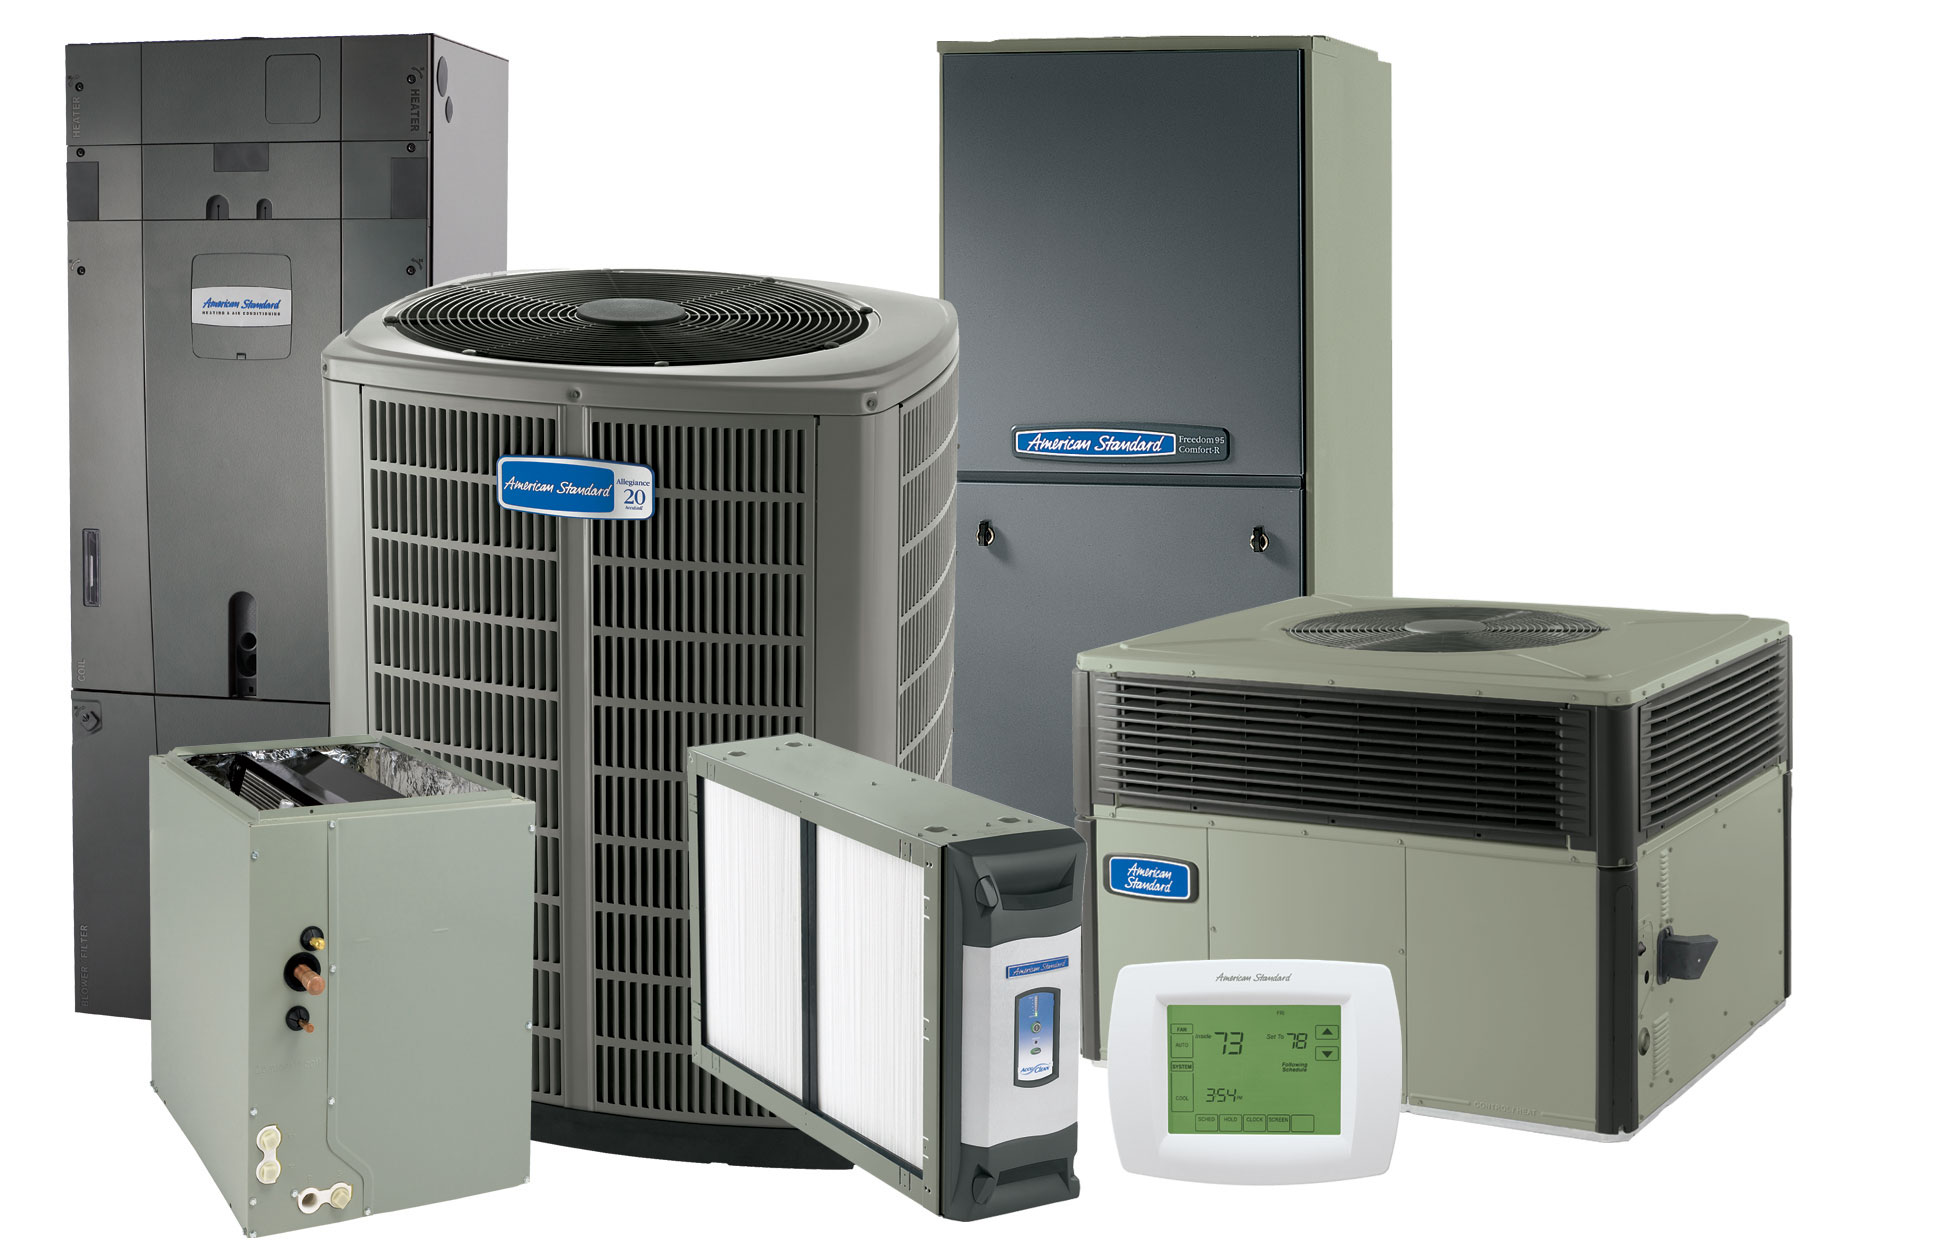 What Are the Key Factors Beyond the Popularity of the Mini Ducted Air Conditioner?